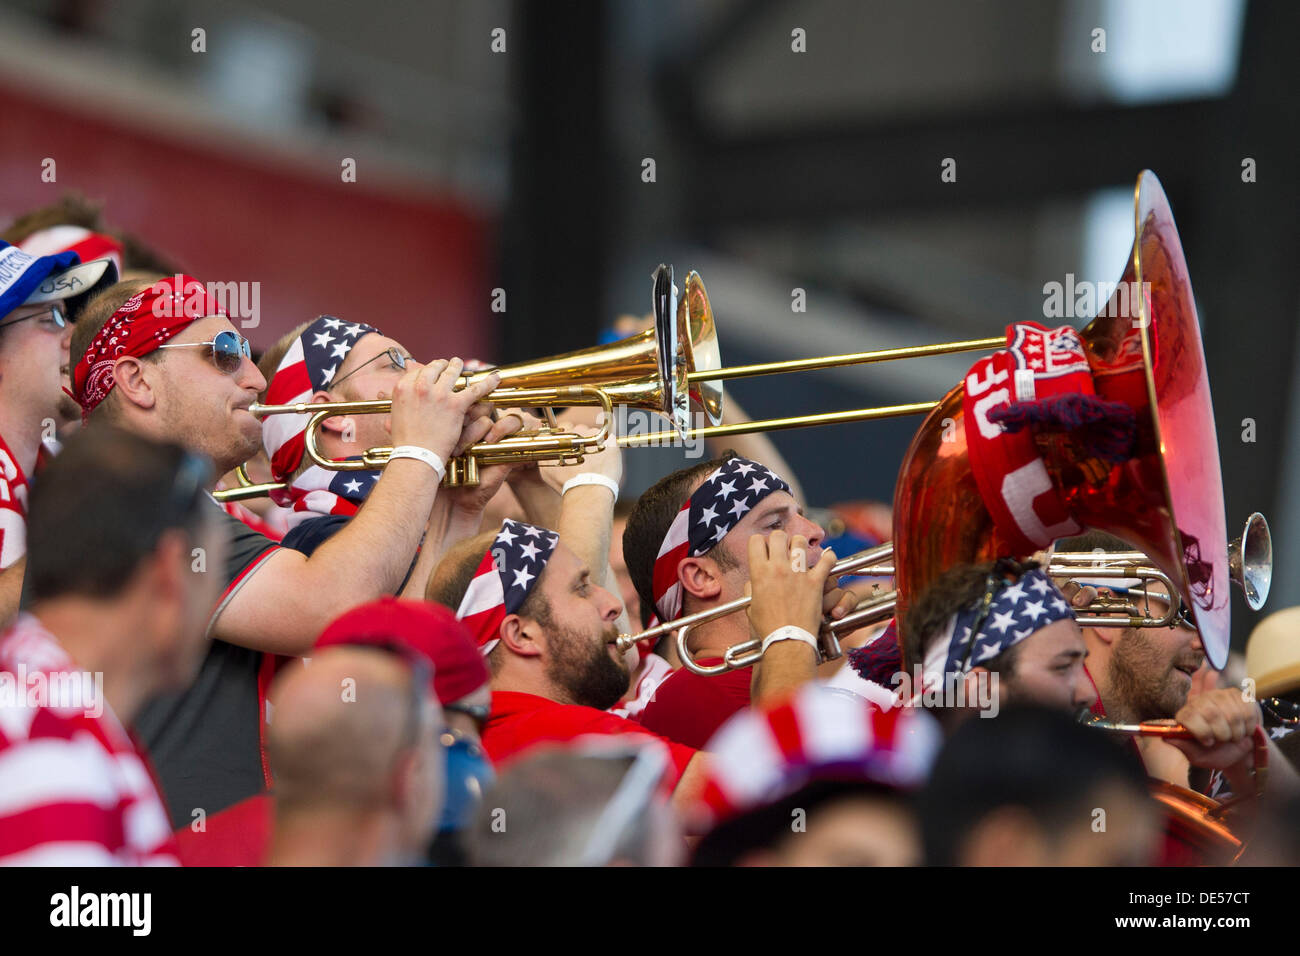 Columbus, Ohio, USA. 10th Sep, 2013. September 10, 2013: Members of the American Outlaws play the trumpet and tuba to get the crowd excited during the U.S. Men's National Team vs. Mexico National Team- World Cup Qualifier match at Columbus Crew Stadium - Columbus, OH. The United States Men's National Team defeated The Mexico National Team 2-0 and clinched a spot for the World Cup in Brazil. © csm/Alamy Live News - Stock Image